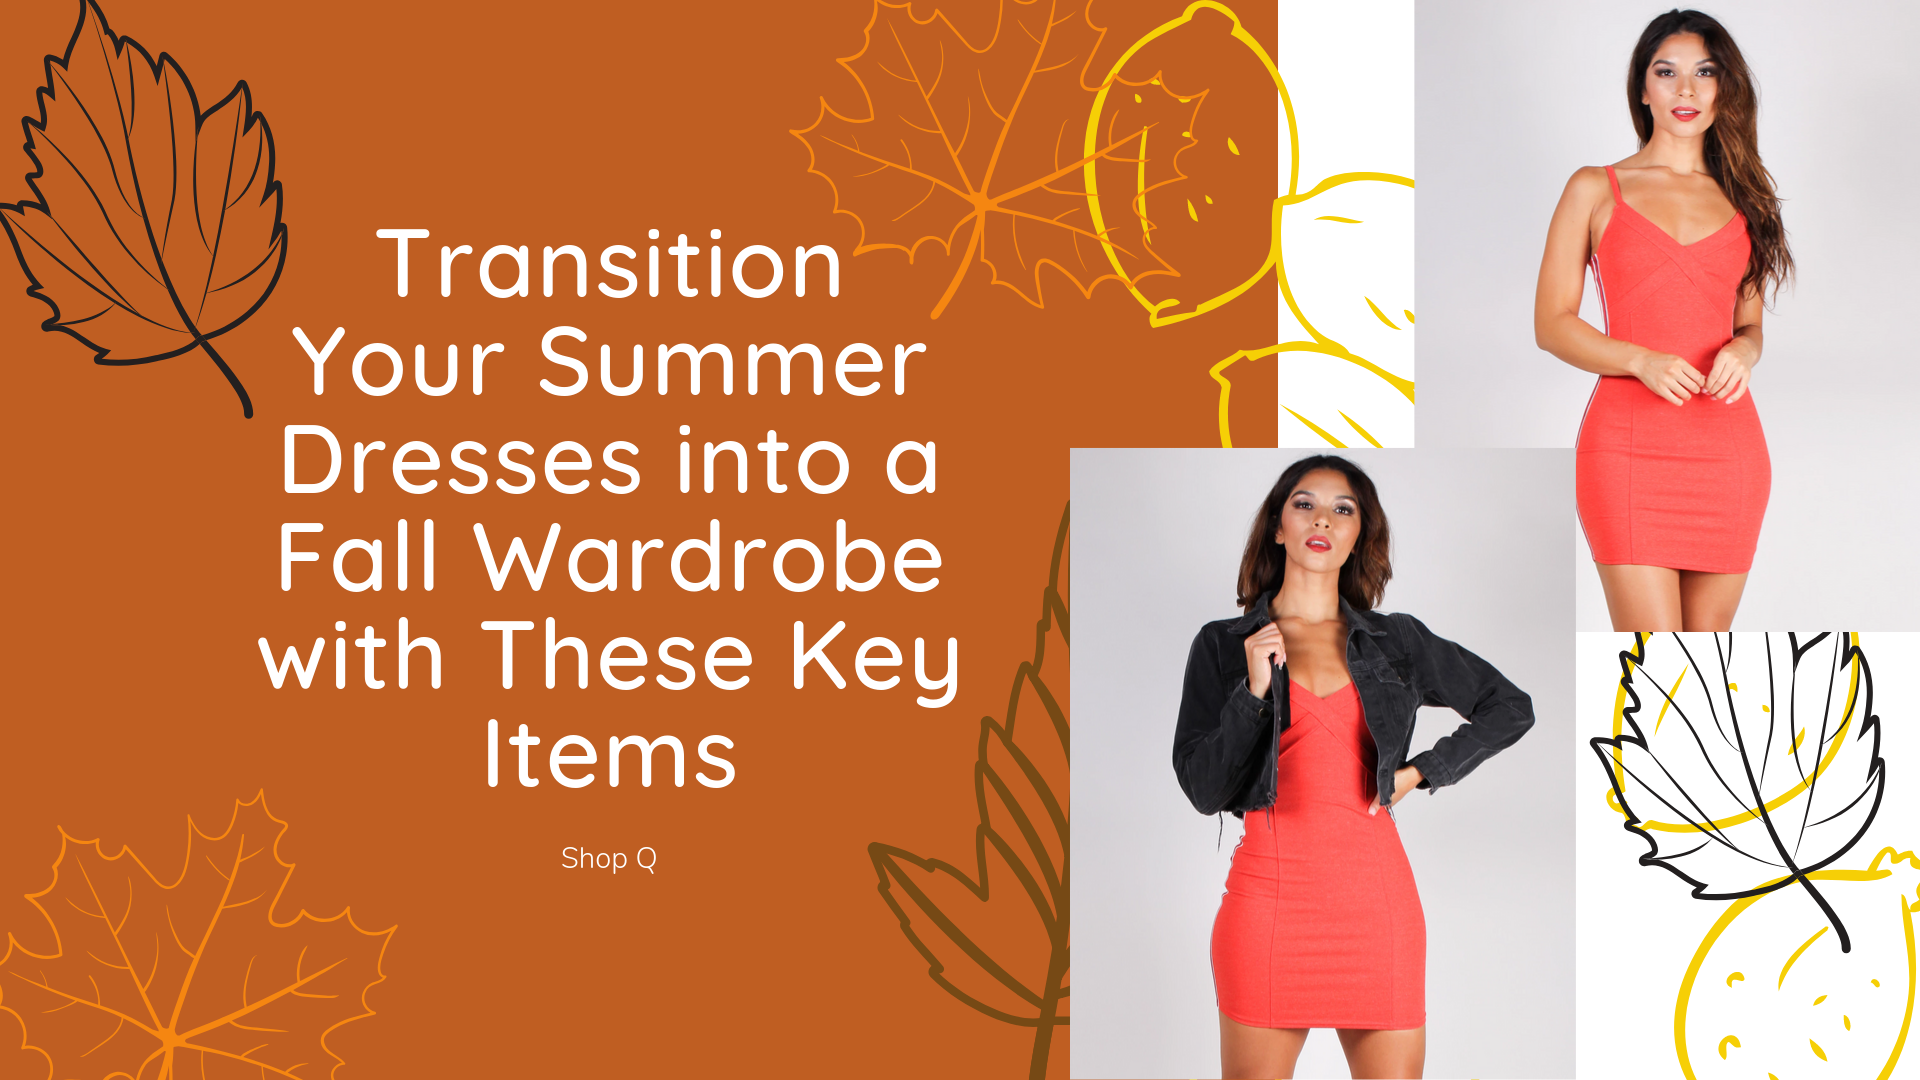 Transition Your Summer Dresses into a Fall Wardrobe with These Key Items